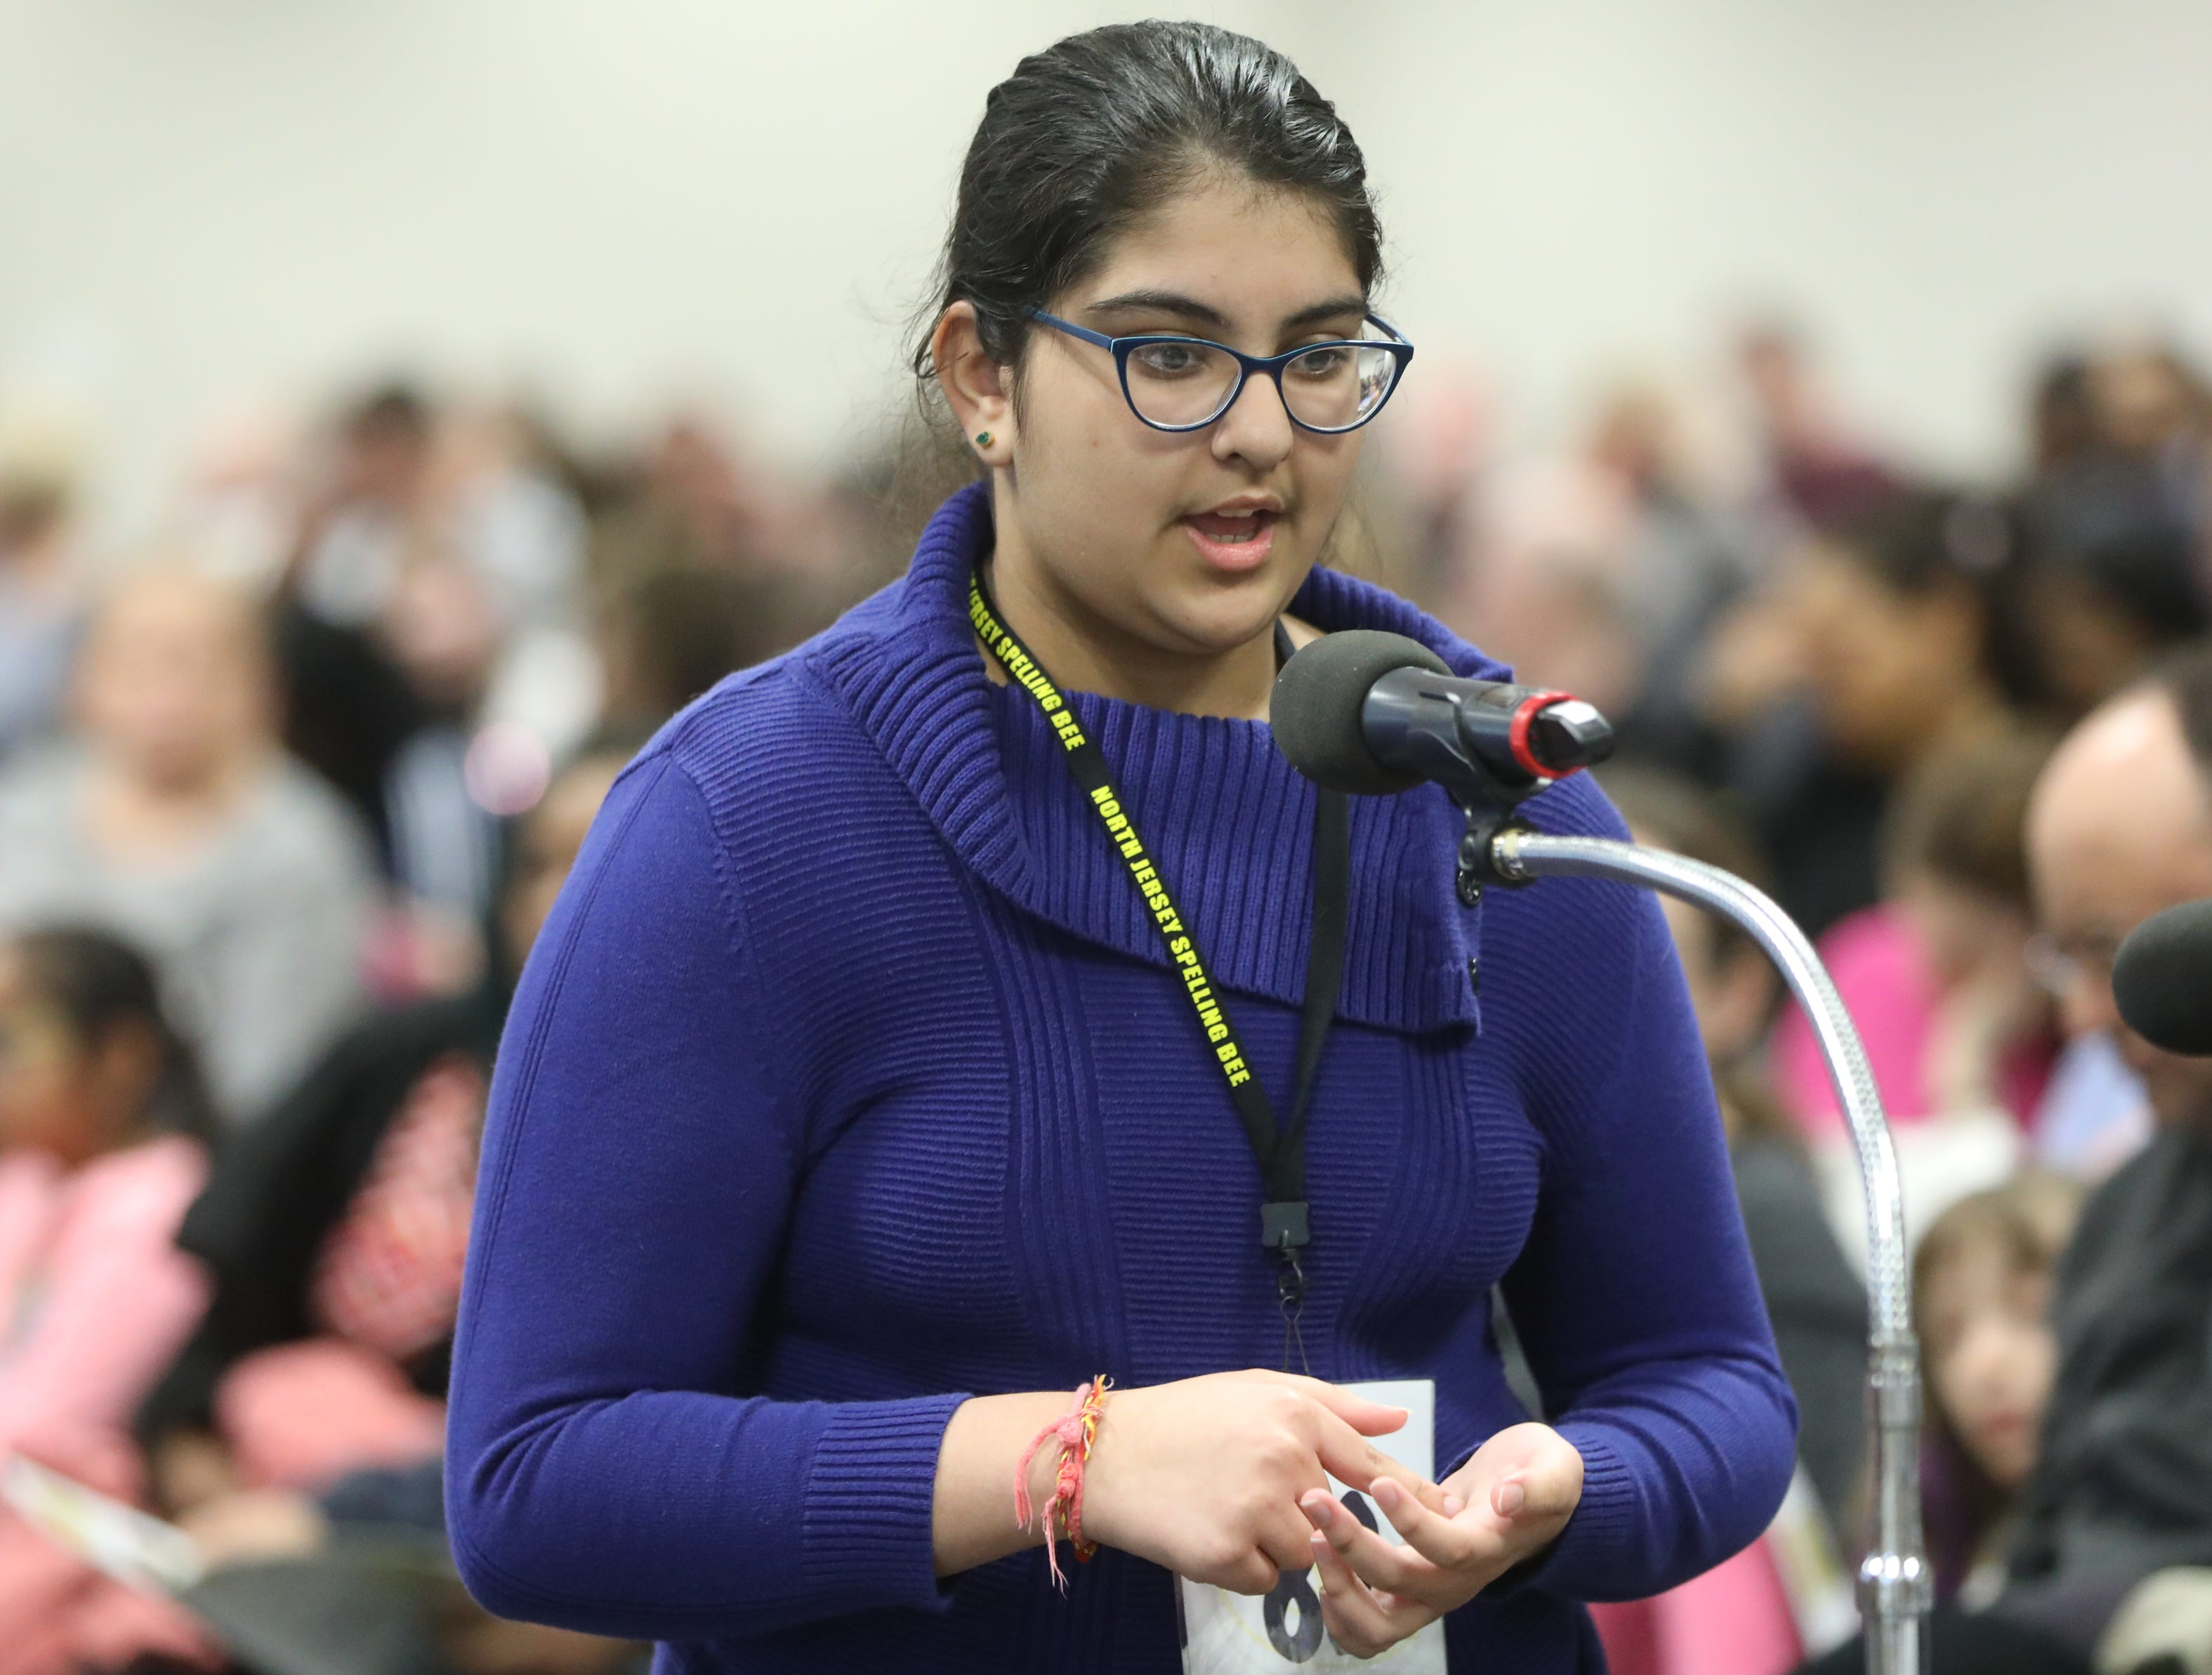 Tannishtha Sethi, of Rutherford, competes in the first round of the 2019 North Jersey Spelling Bee, in Paramus. Thursday, March 14, 2019